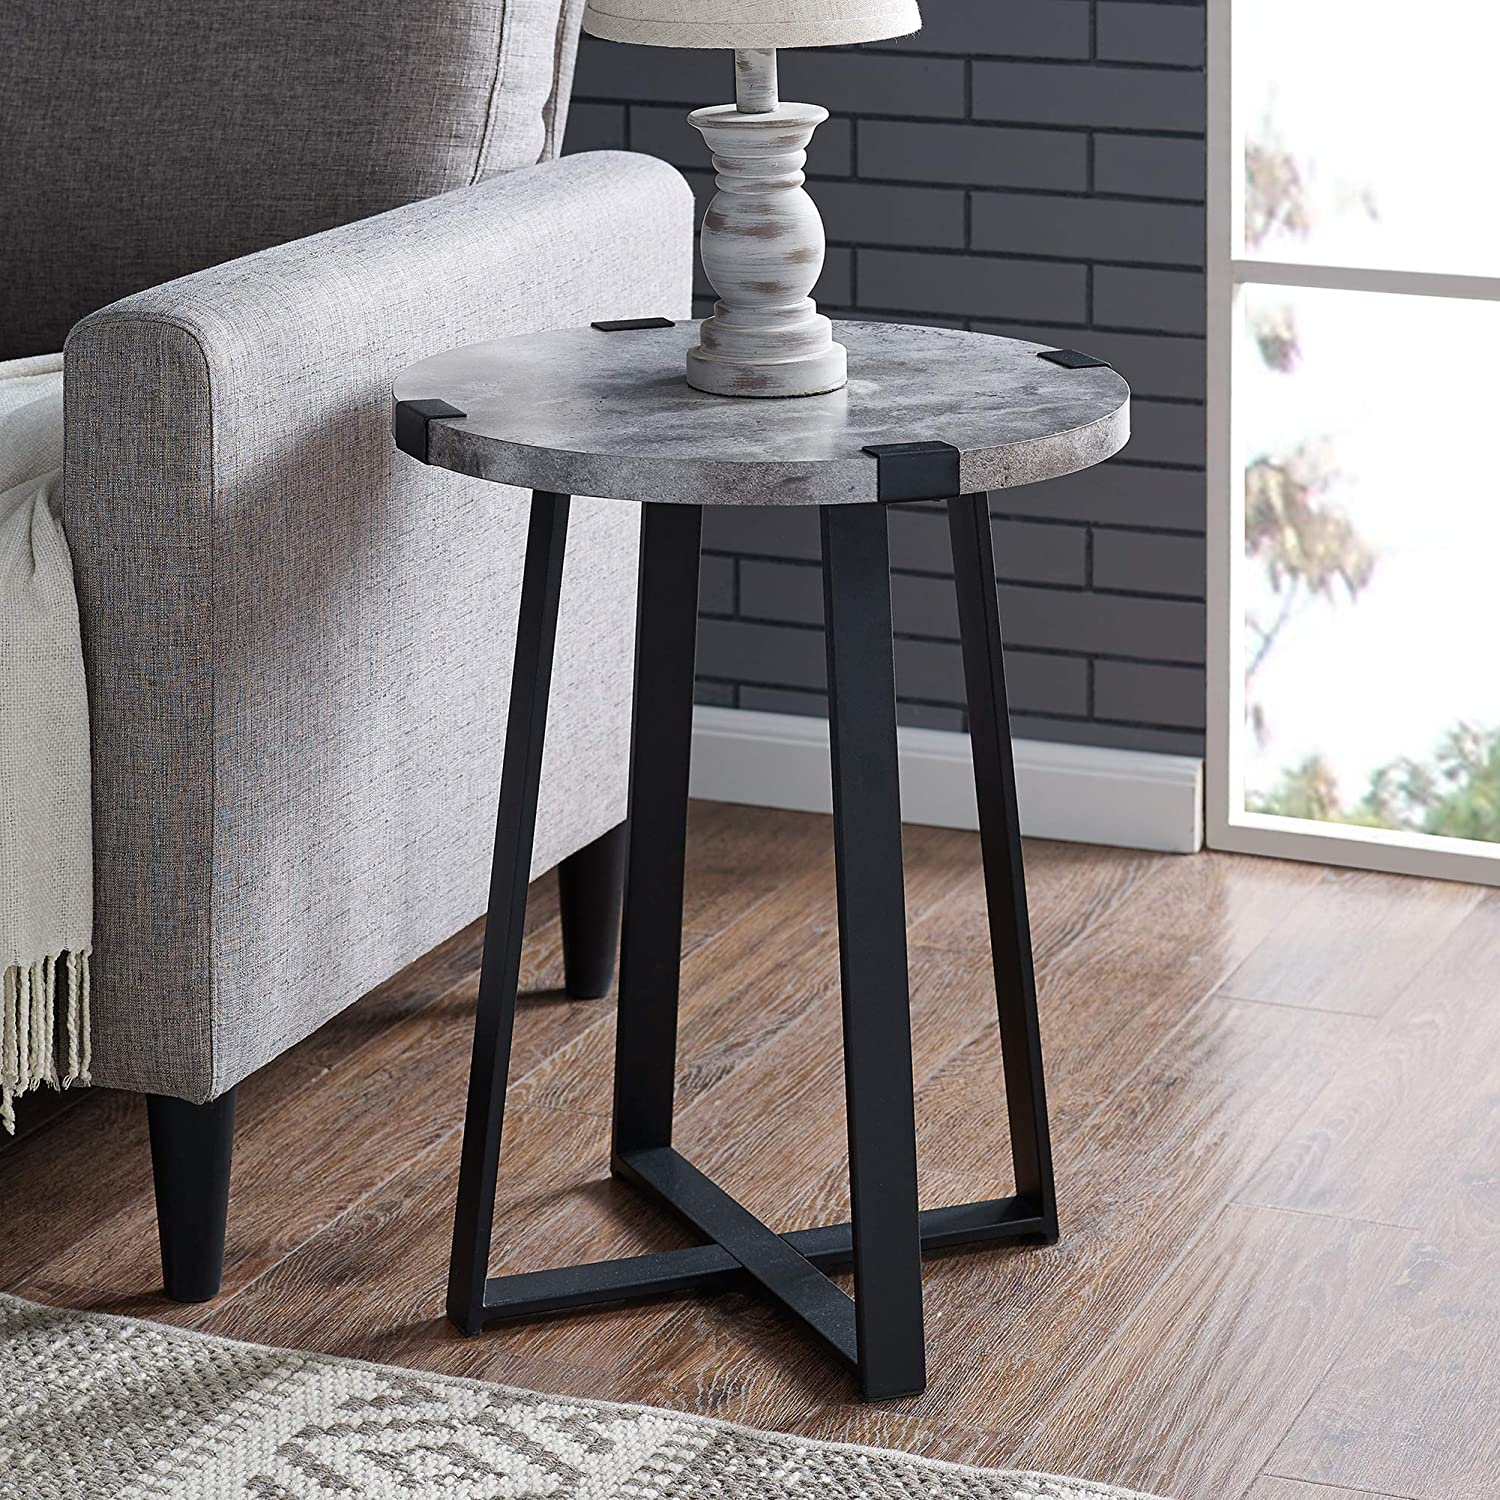 WE Furniture AZF18MWSTDC Rustic Farmhouse Round Metal Side End Accent Table Living Room, 18 Inch, Dark Concrete